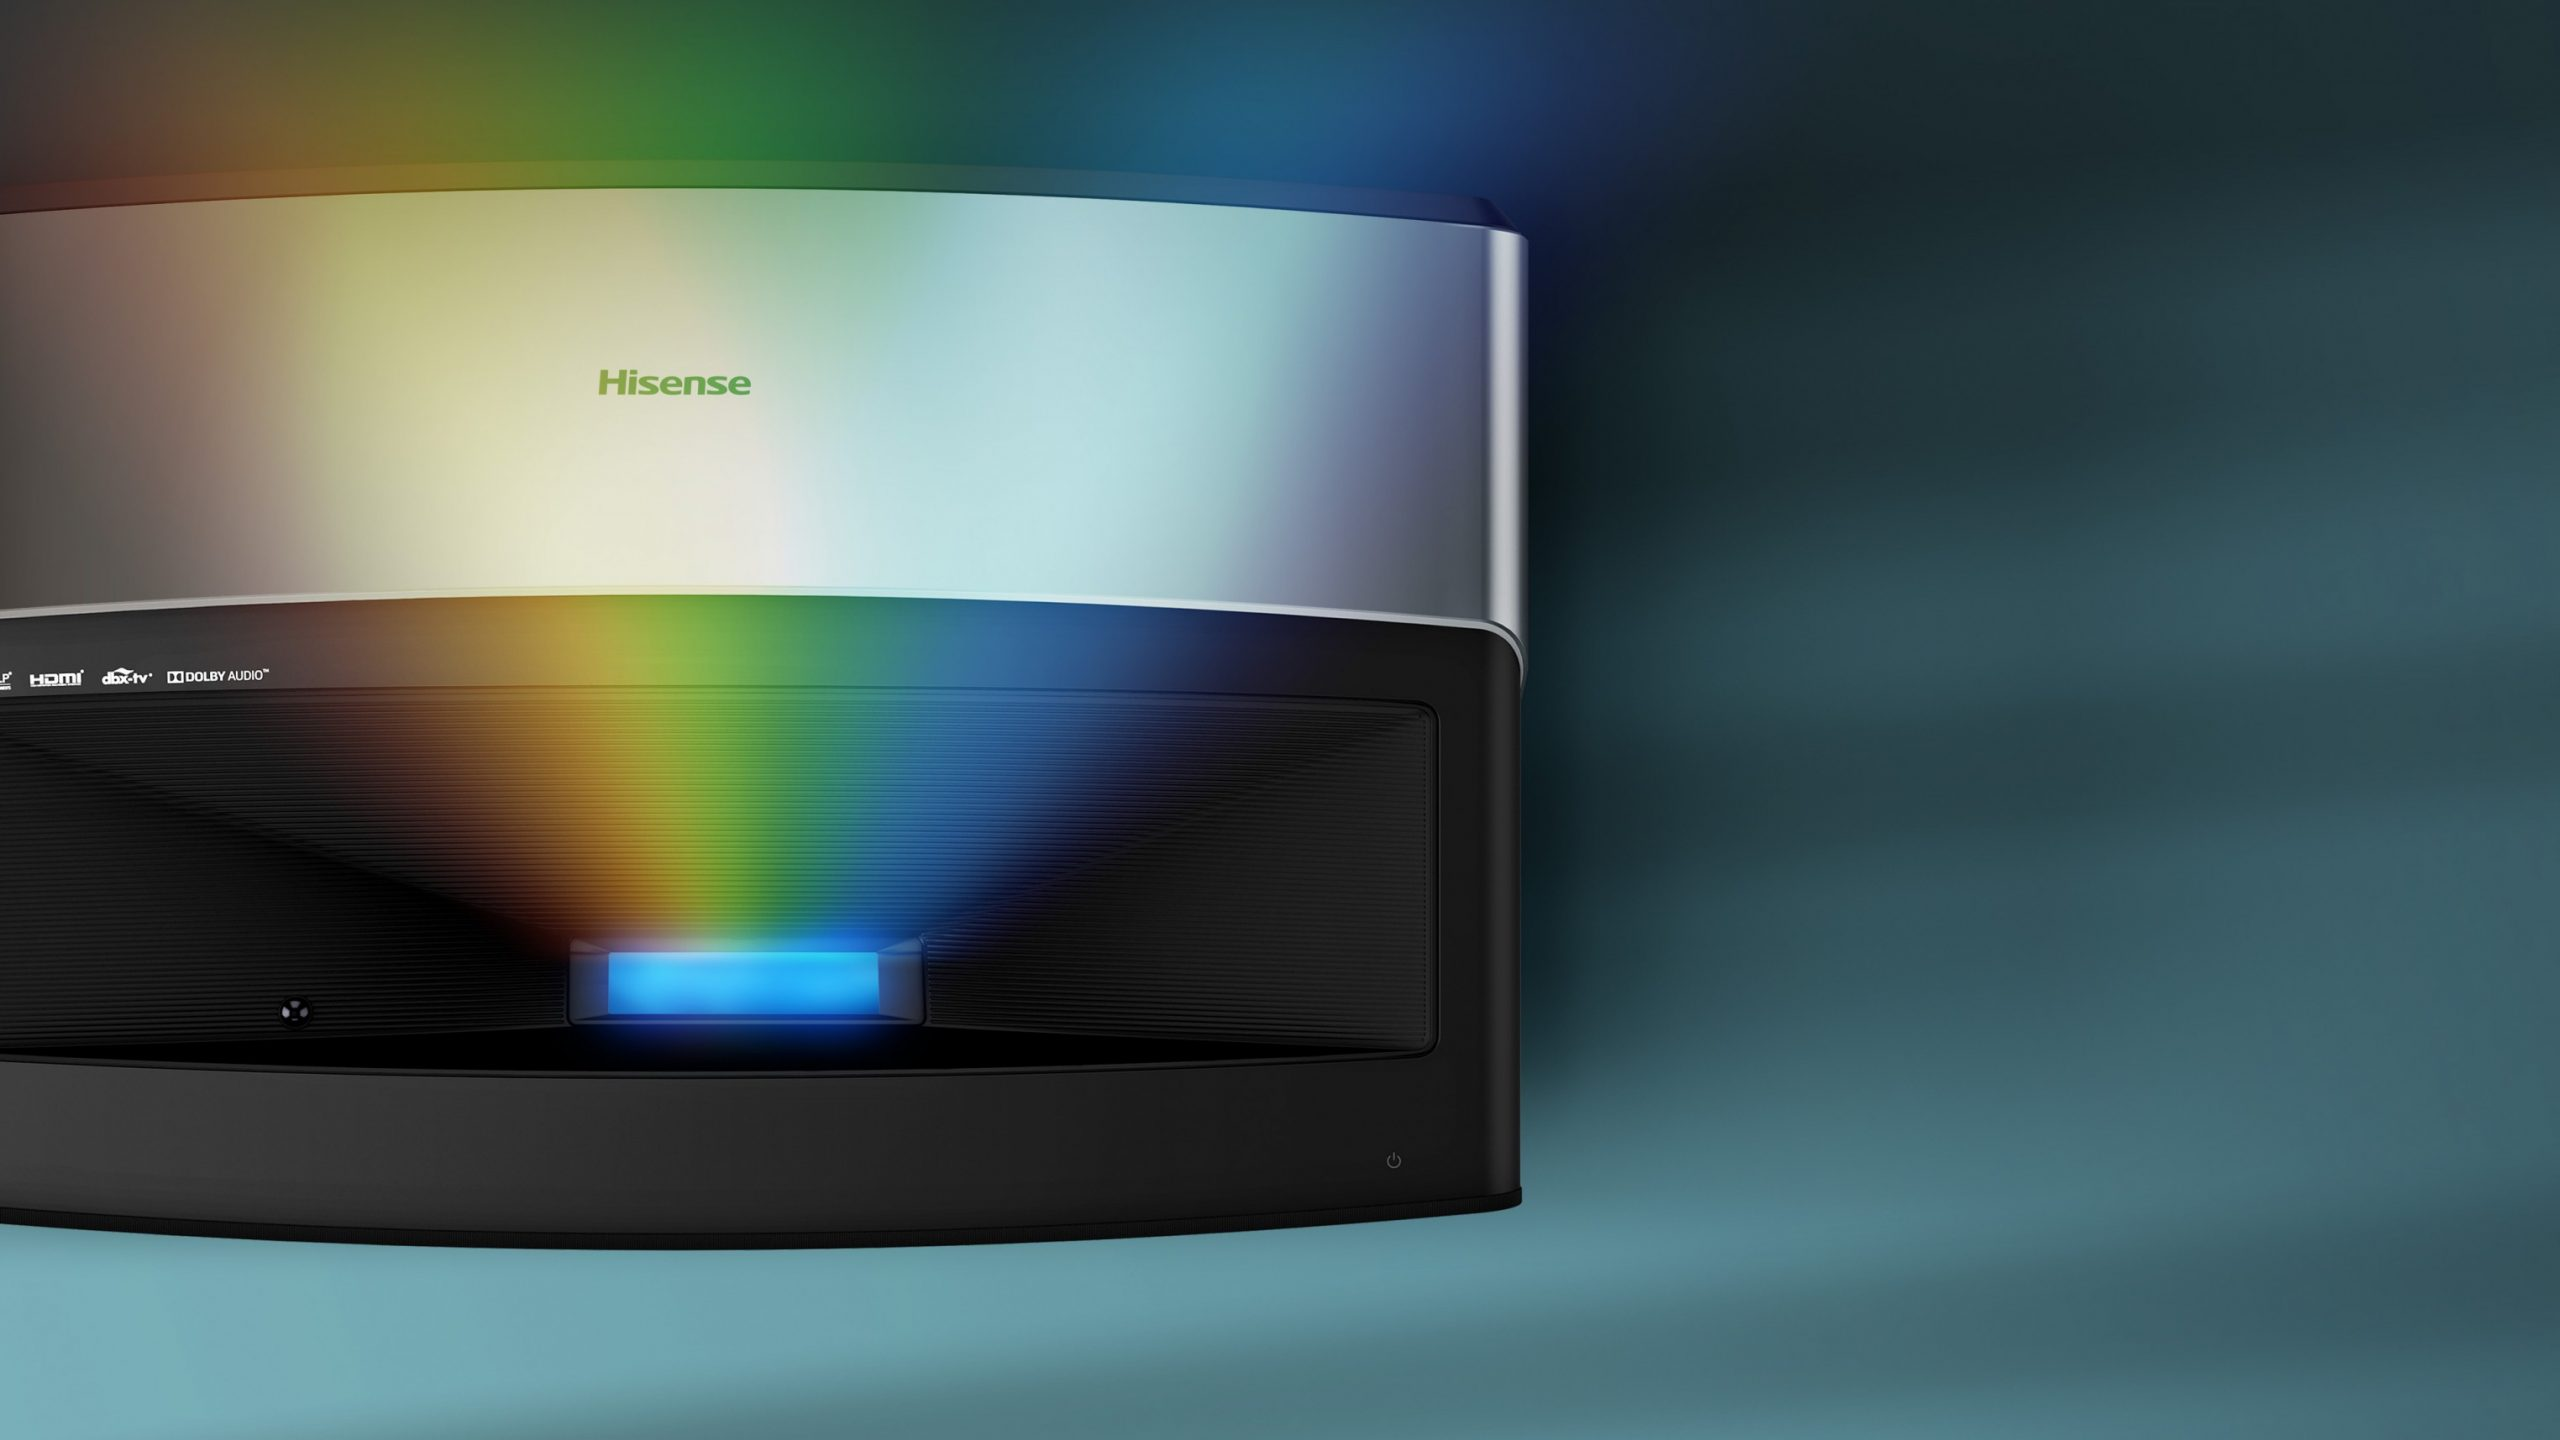 X-Fusion-Laser-Light-Source__ScaleMaxWidthWzMwNDhd-ng1gly-scaled5f8009c2b25bd